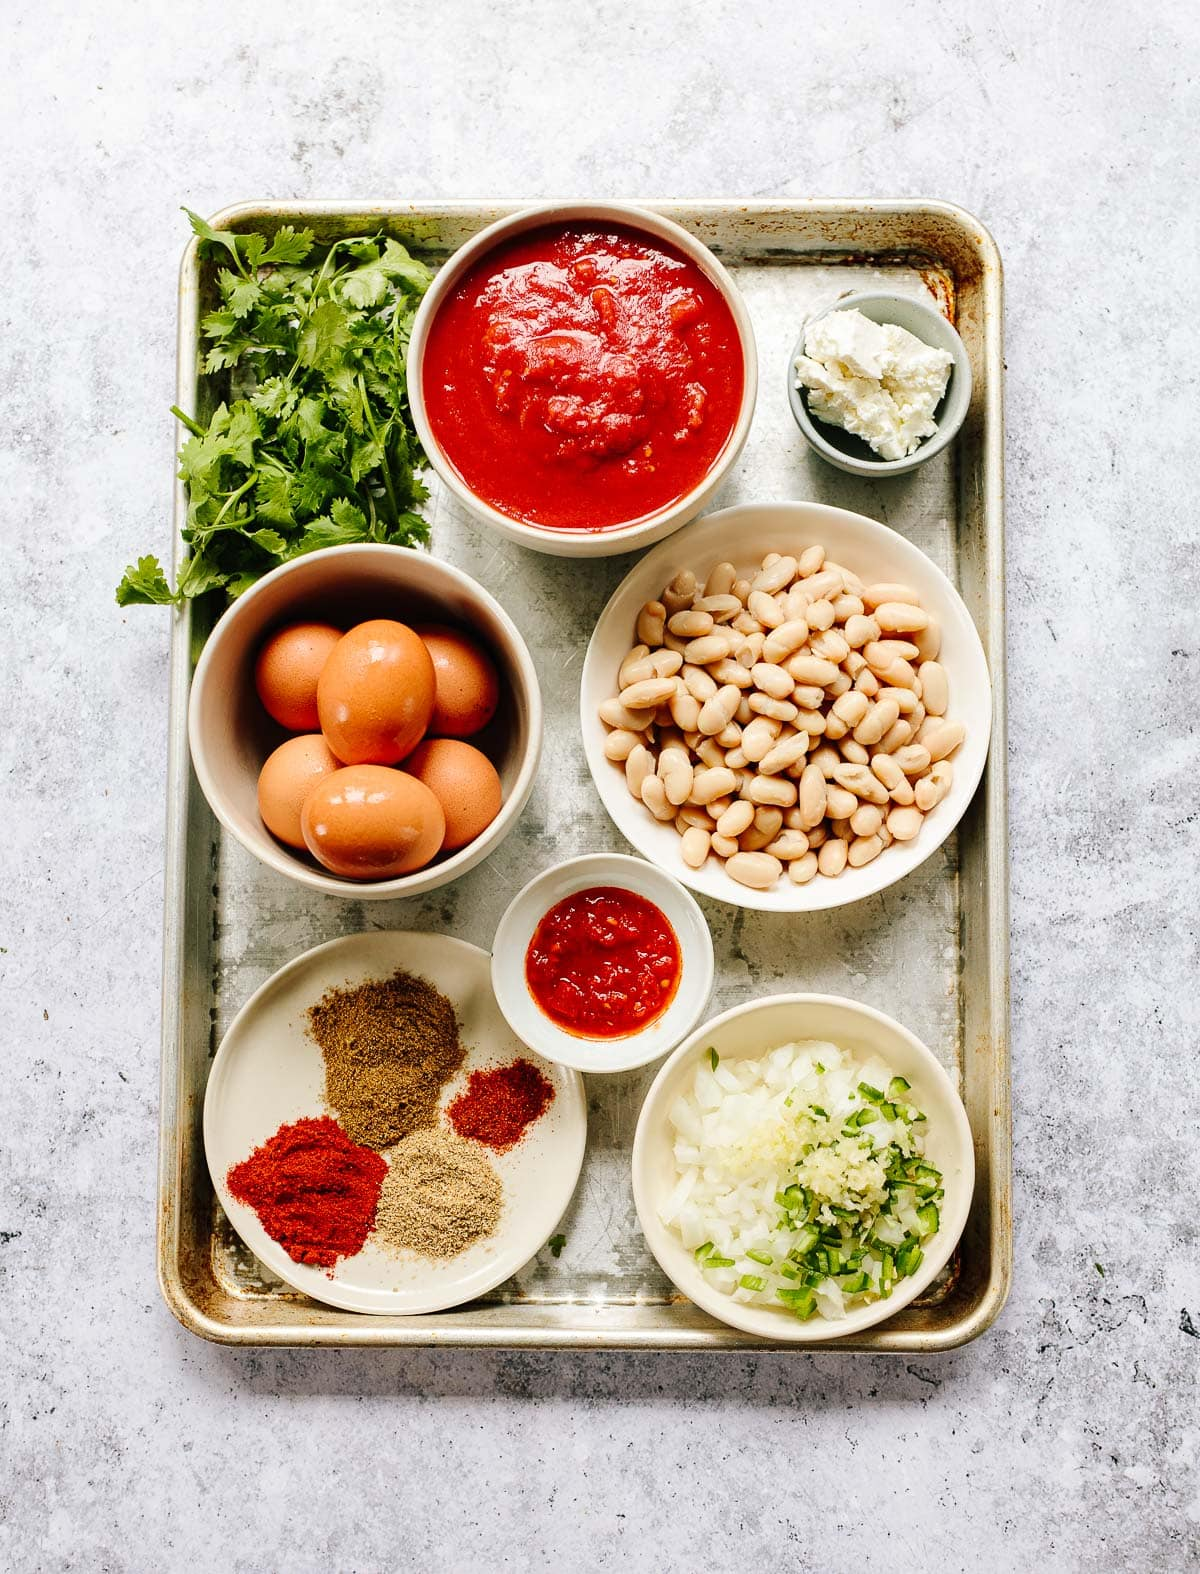 Ingredients on a tray for shakshuka include crushed tomatoes, eggs, cannellini beans, spices, chopped onion, chili, harissa paste and feta cheese.